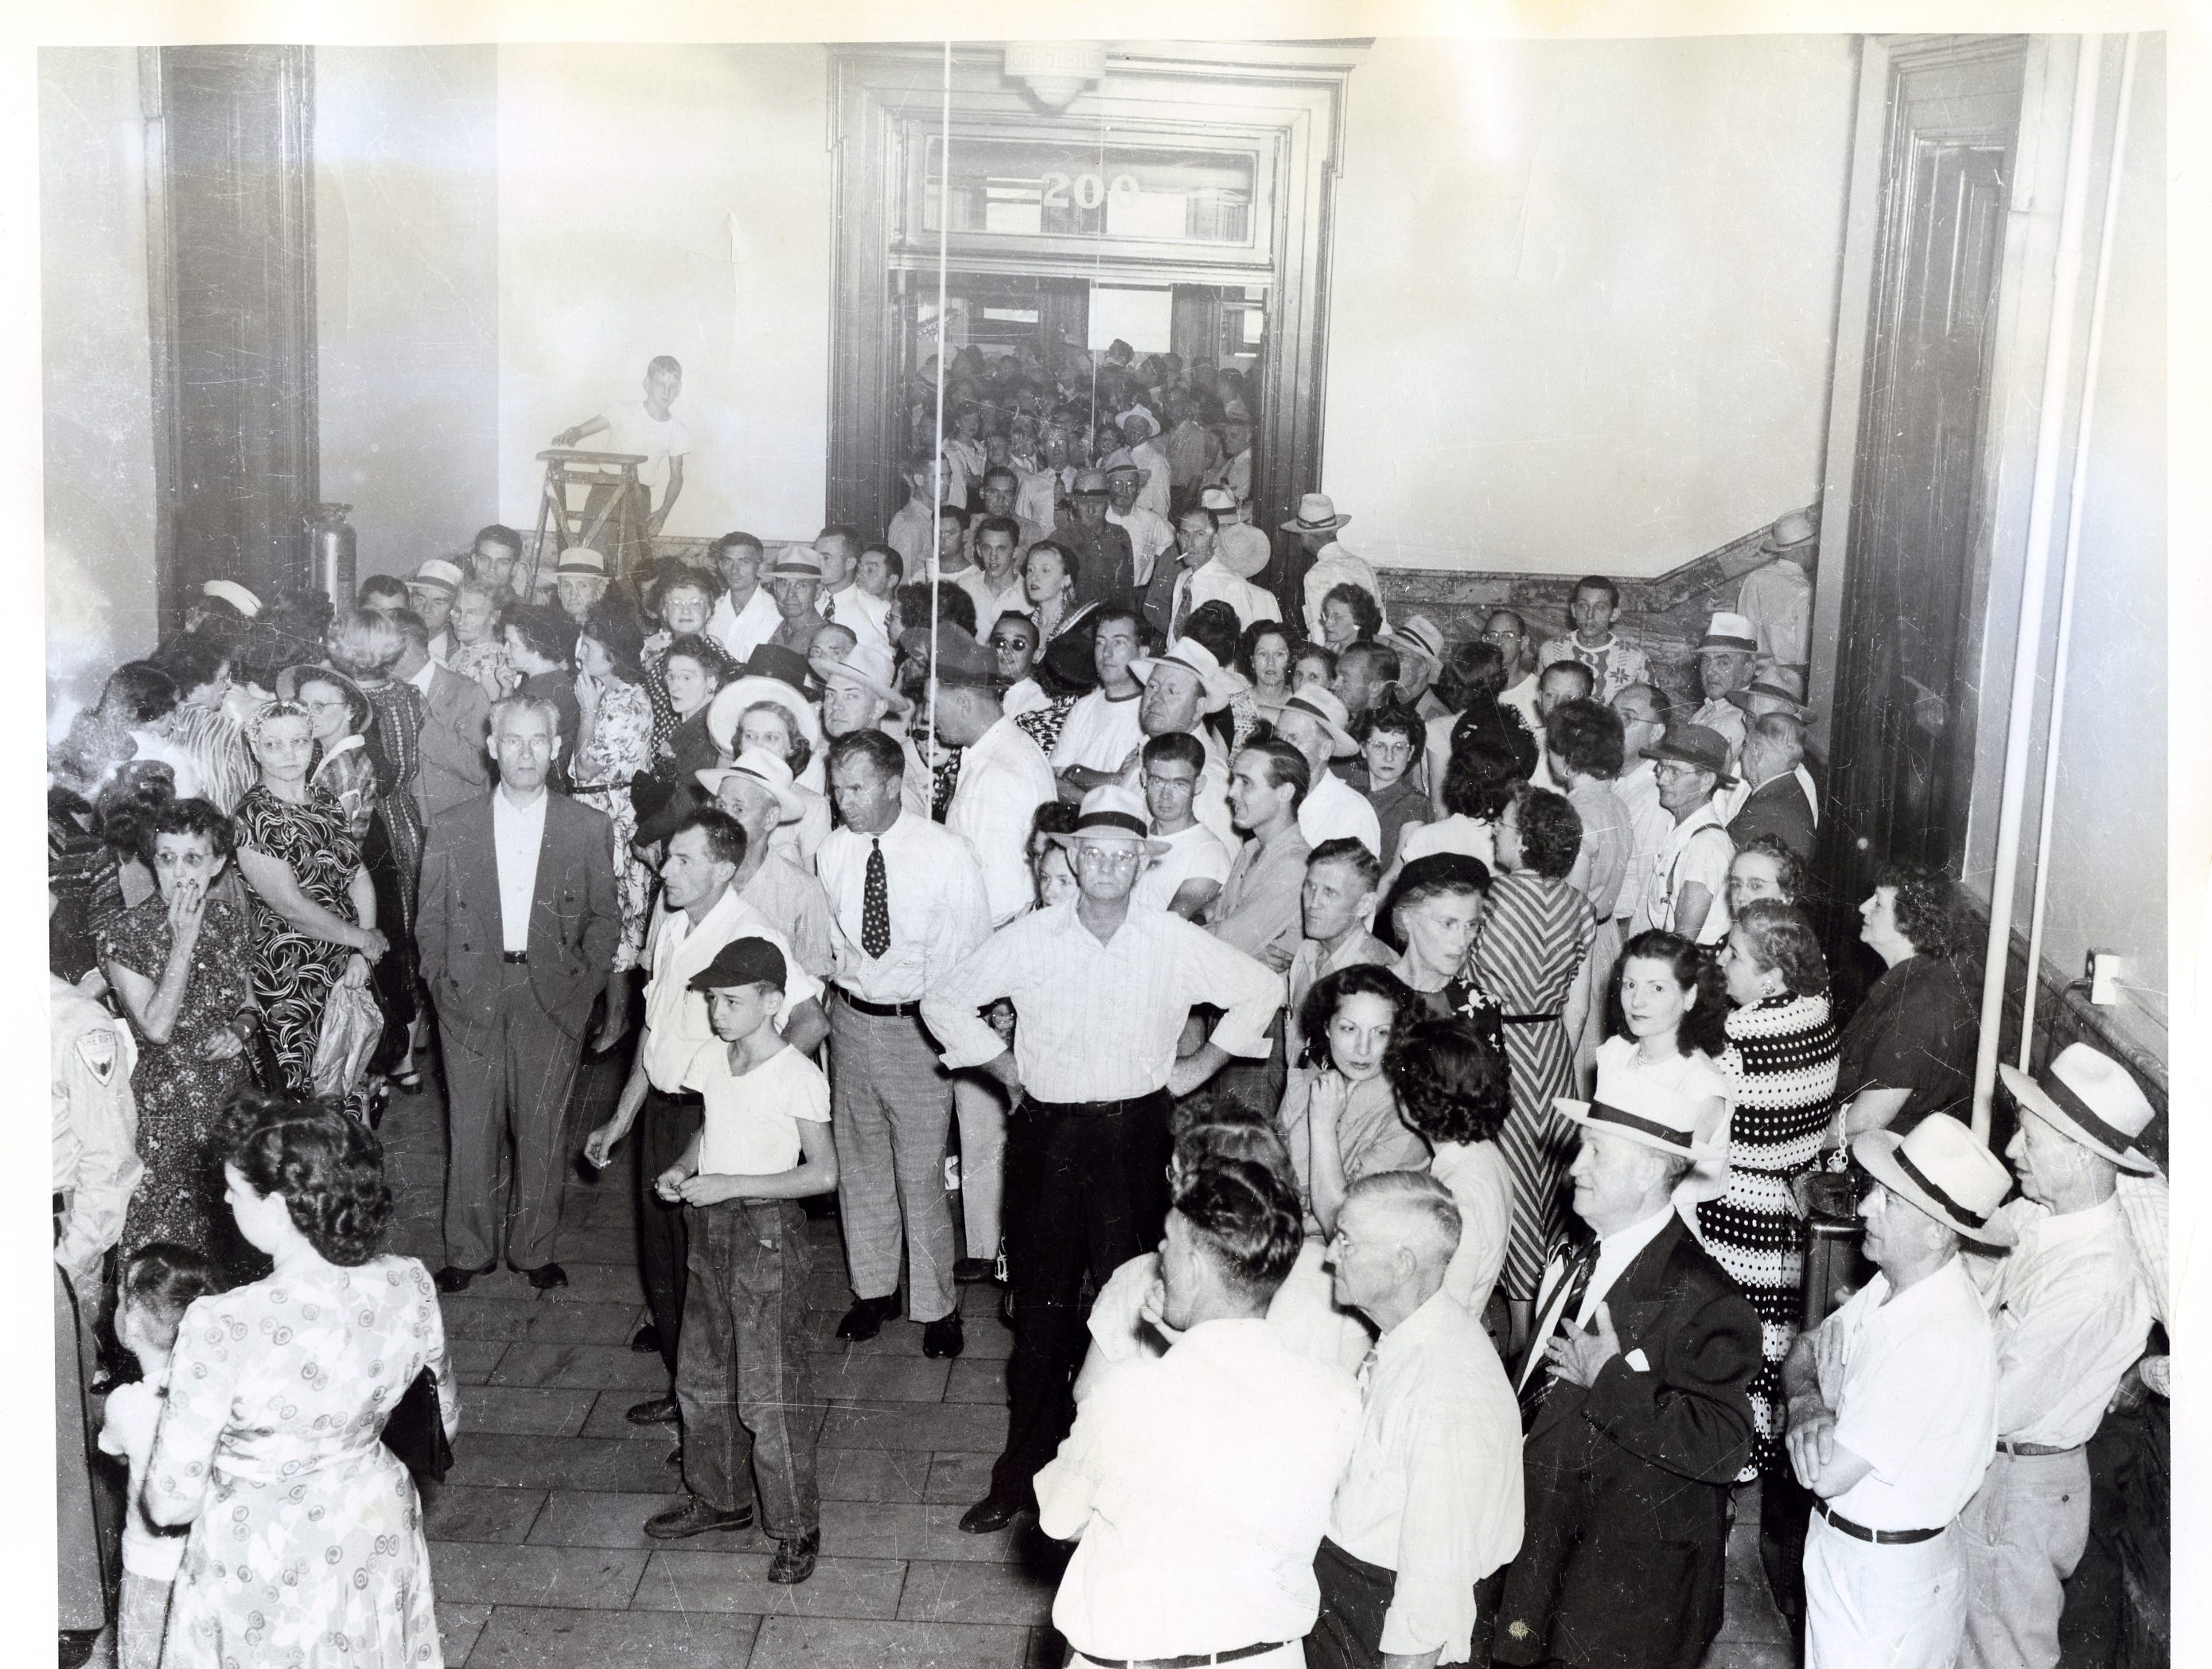 Outside the Circuit Court room of the Vanderburgh County court house, overflow crowds jammed the corridors Monday, August 29, 1950.